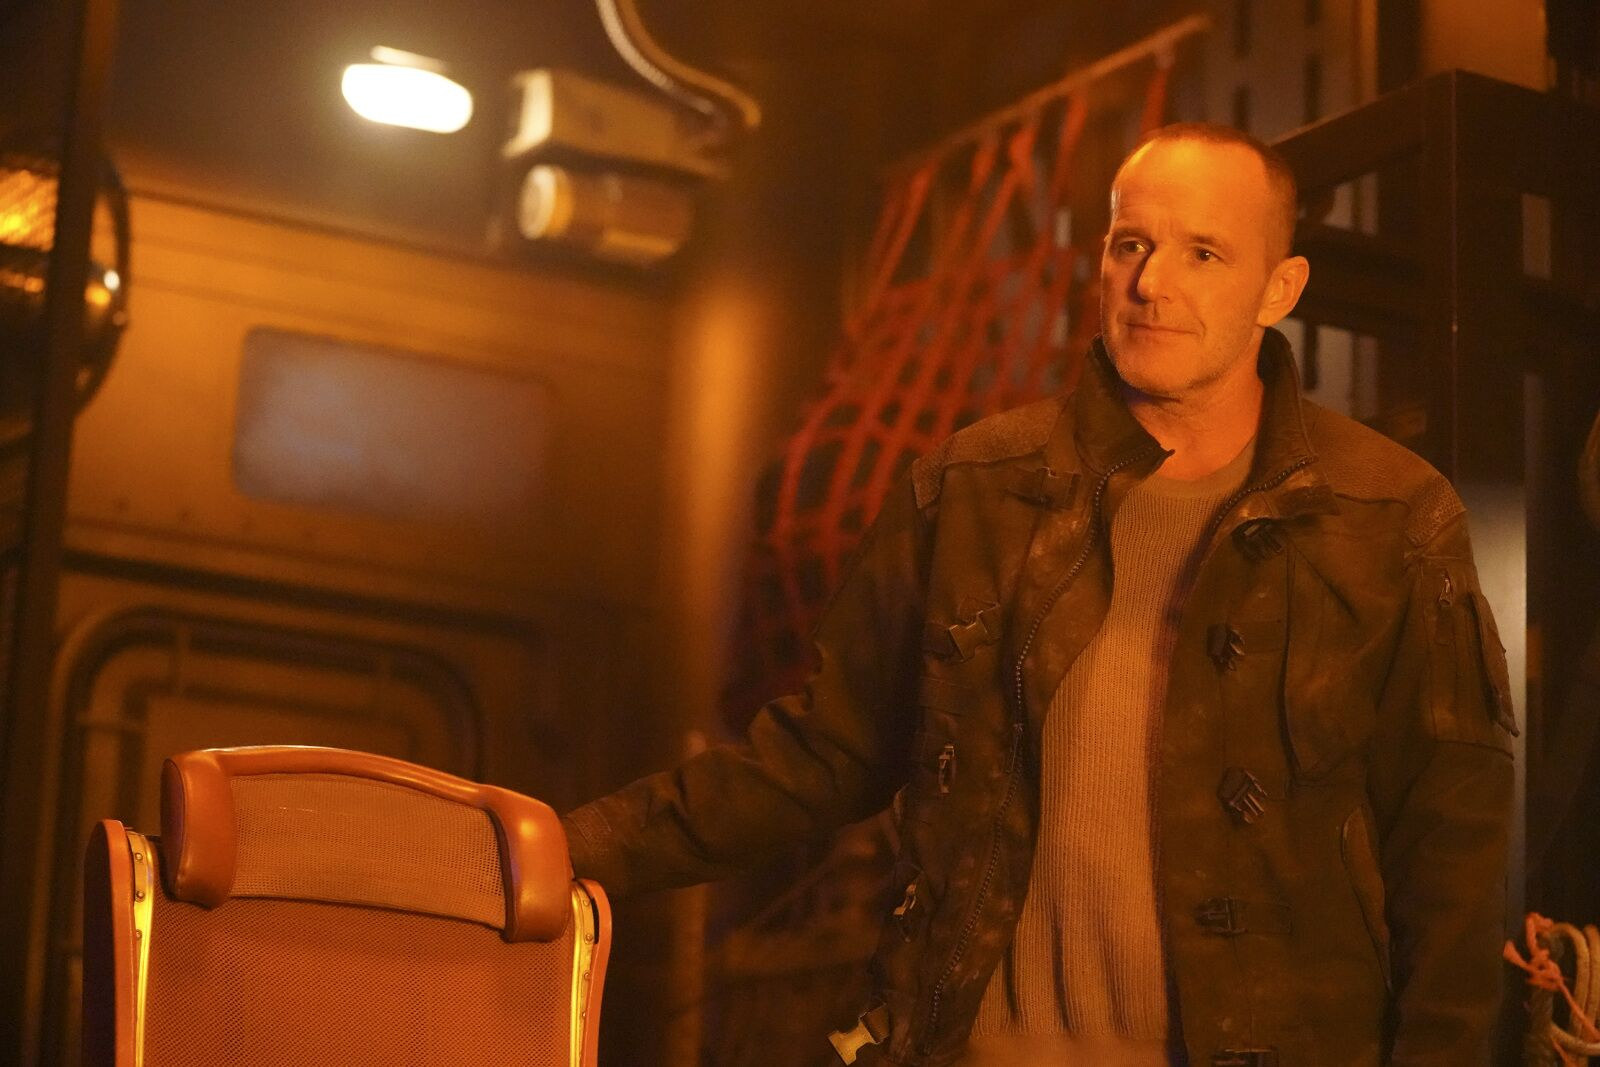 Marvel's Agents of SHIELD: Let's talk about Sarge's potential past